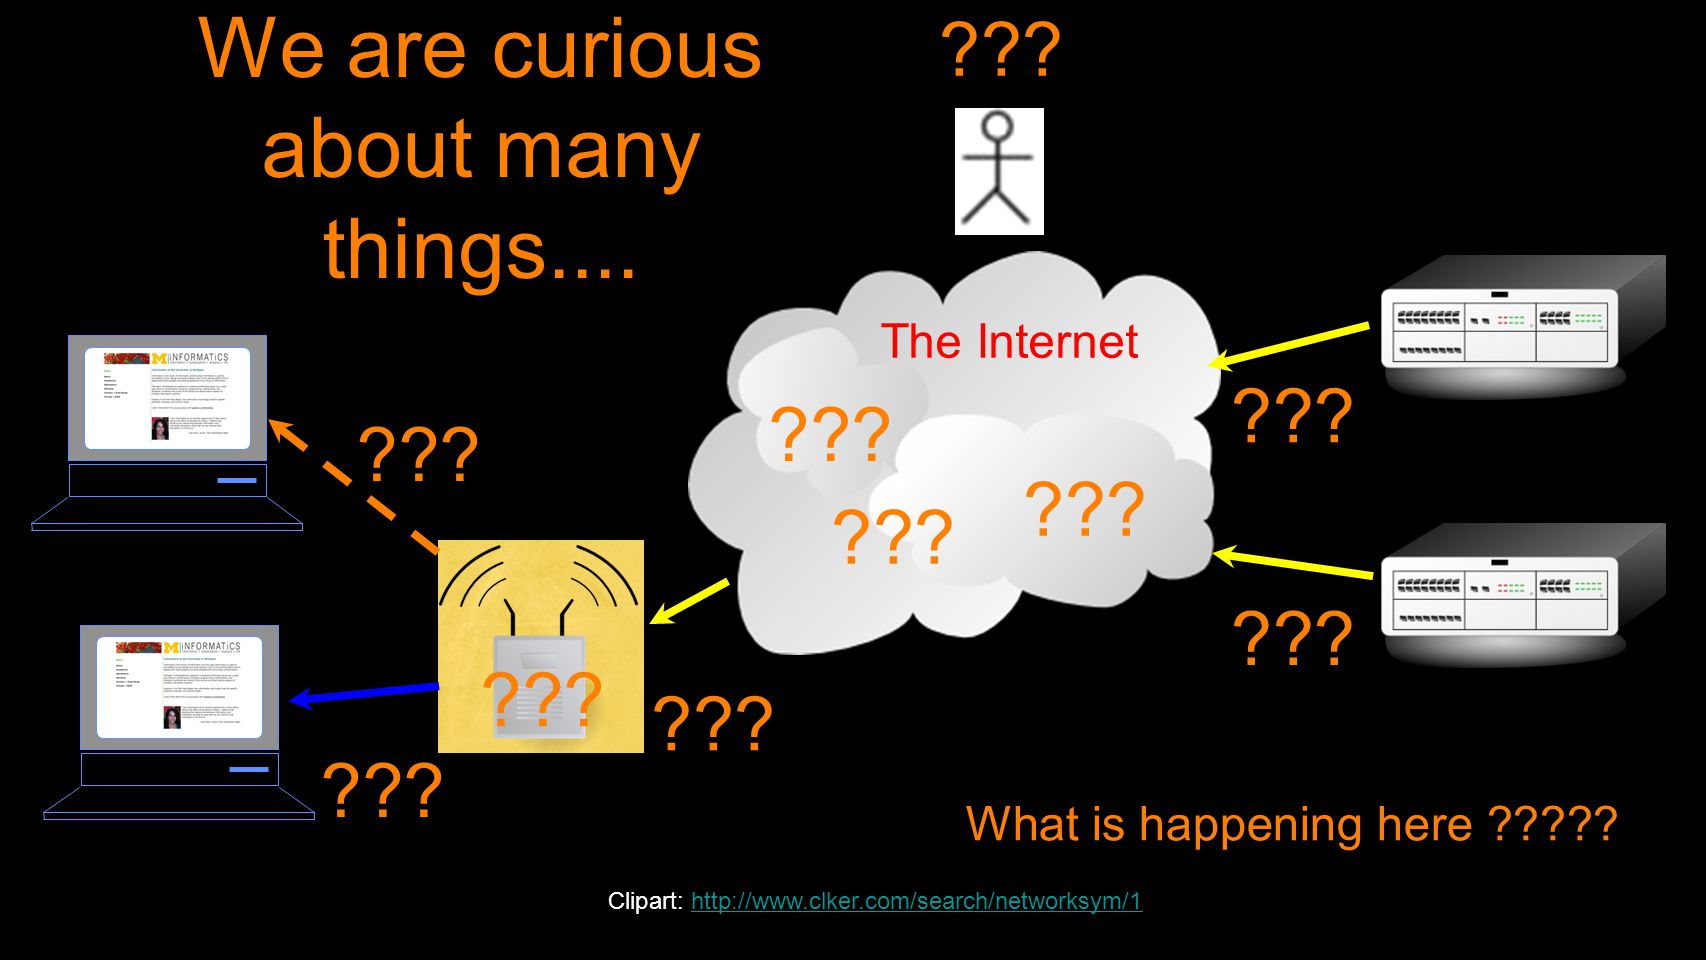 The Internet We are curious about many things.... ??? What is happening here ????? ??? Clipart: http://www.clker.com/search/networksym/1http://www.clk